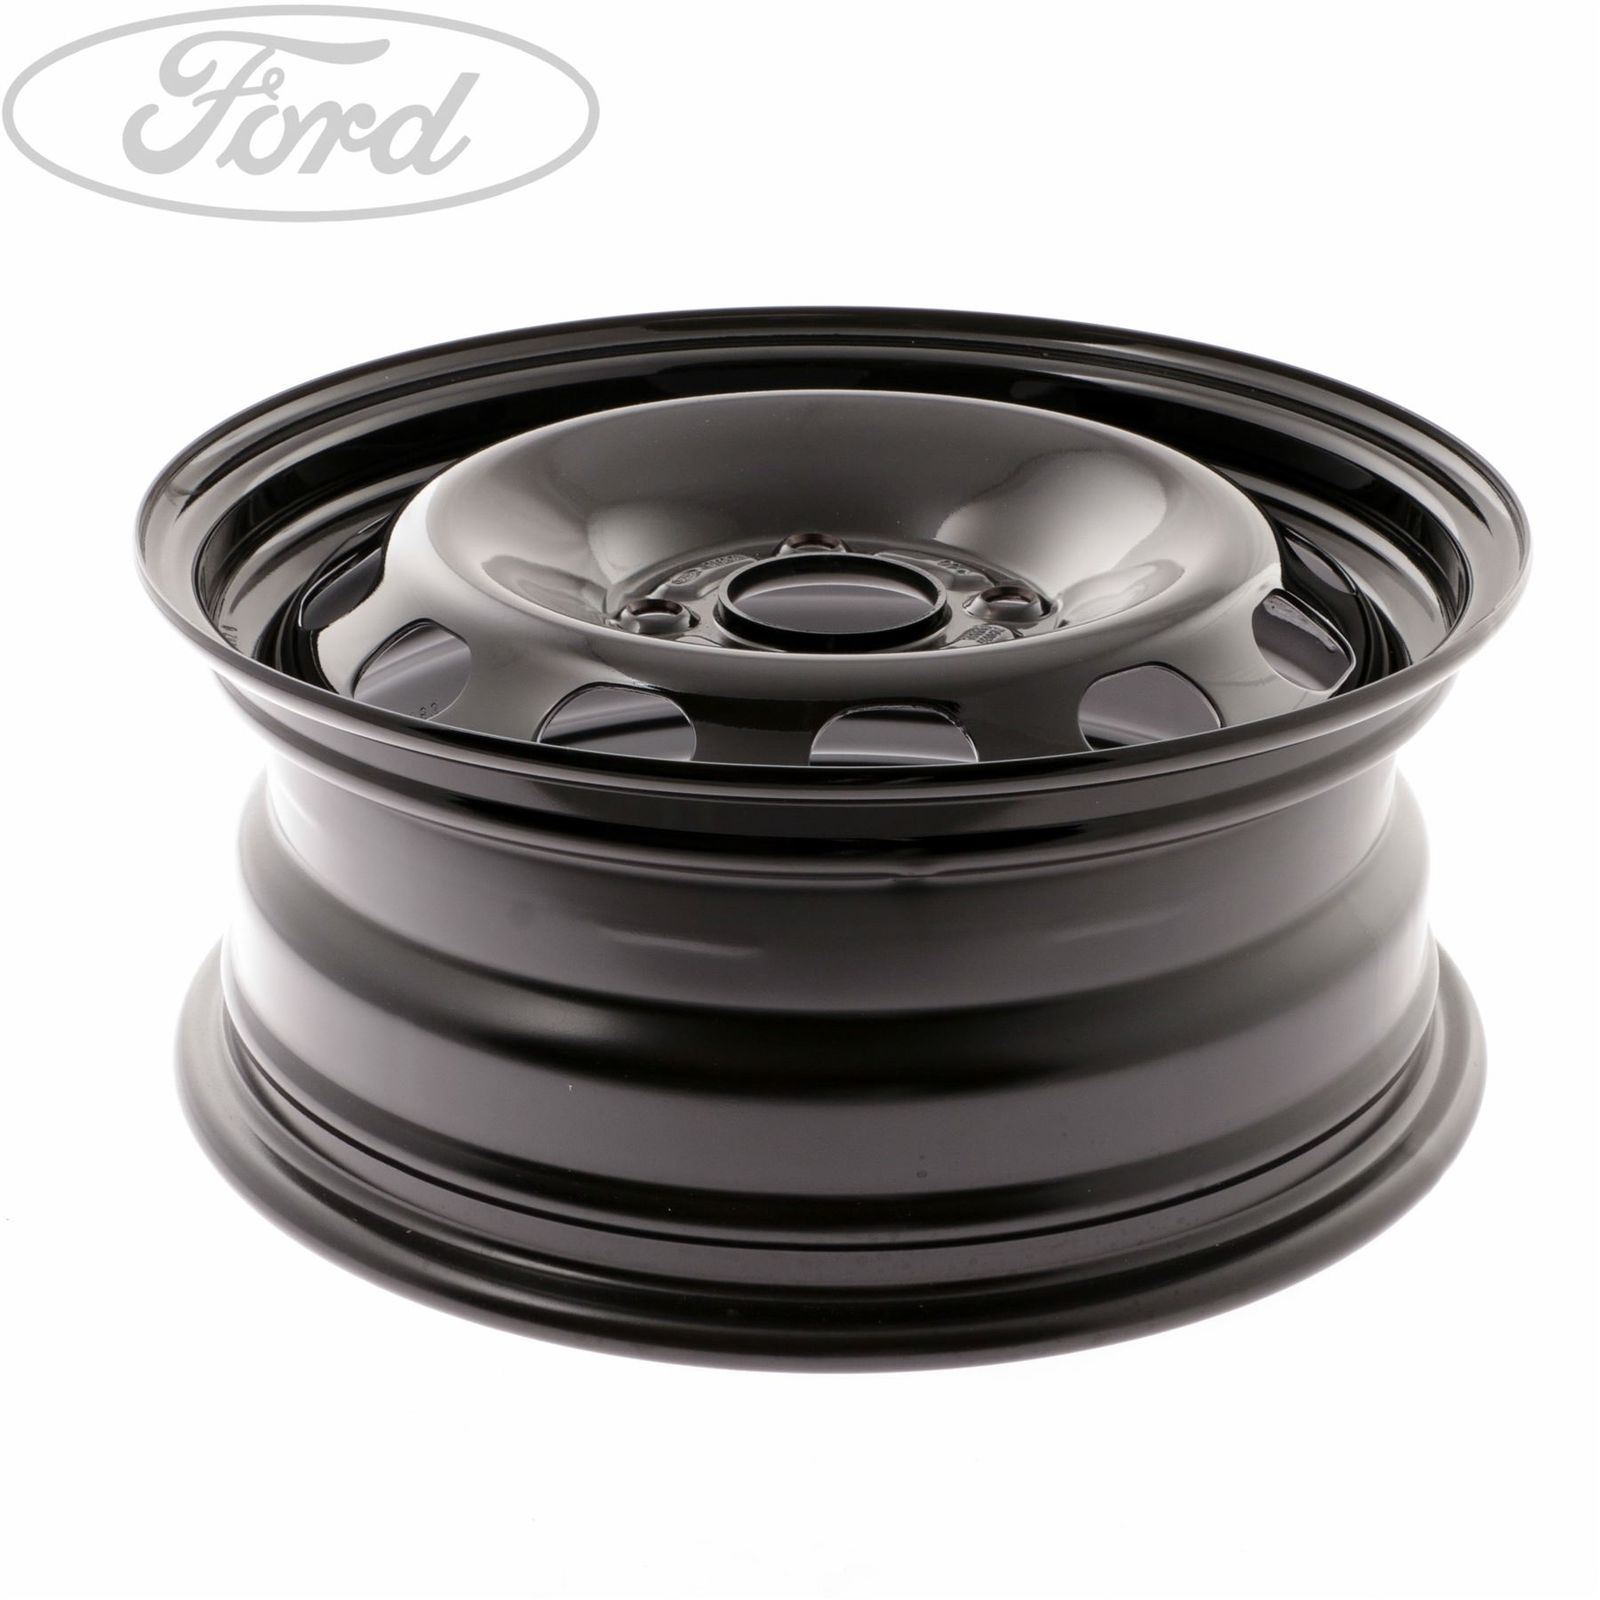 Genuine Ford Fiesta MK7 15 Steel Road Wheel 2008-Onwards 1881869